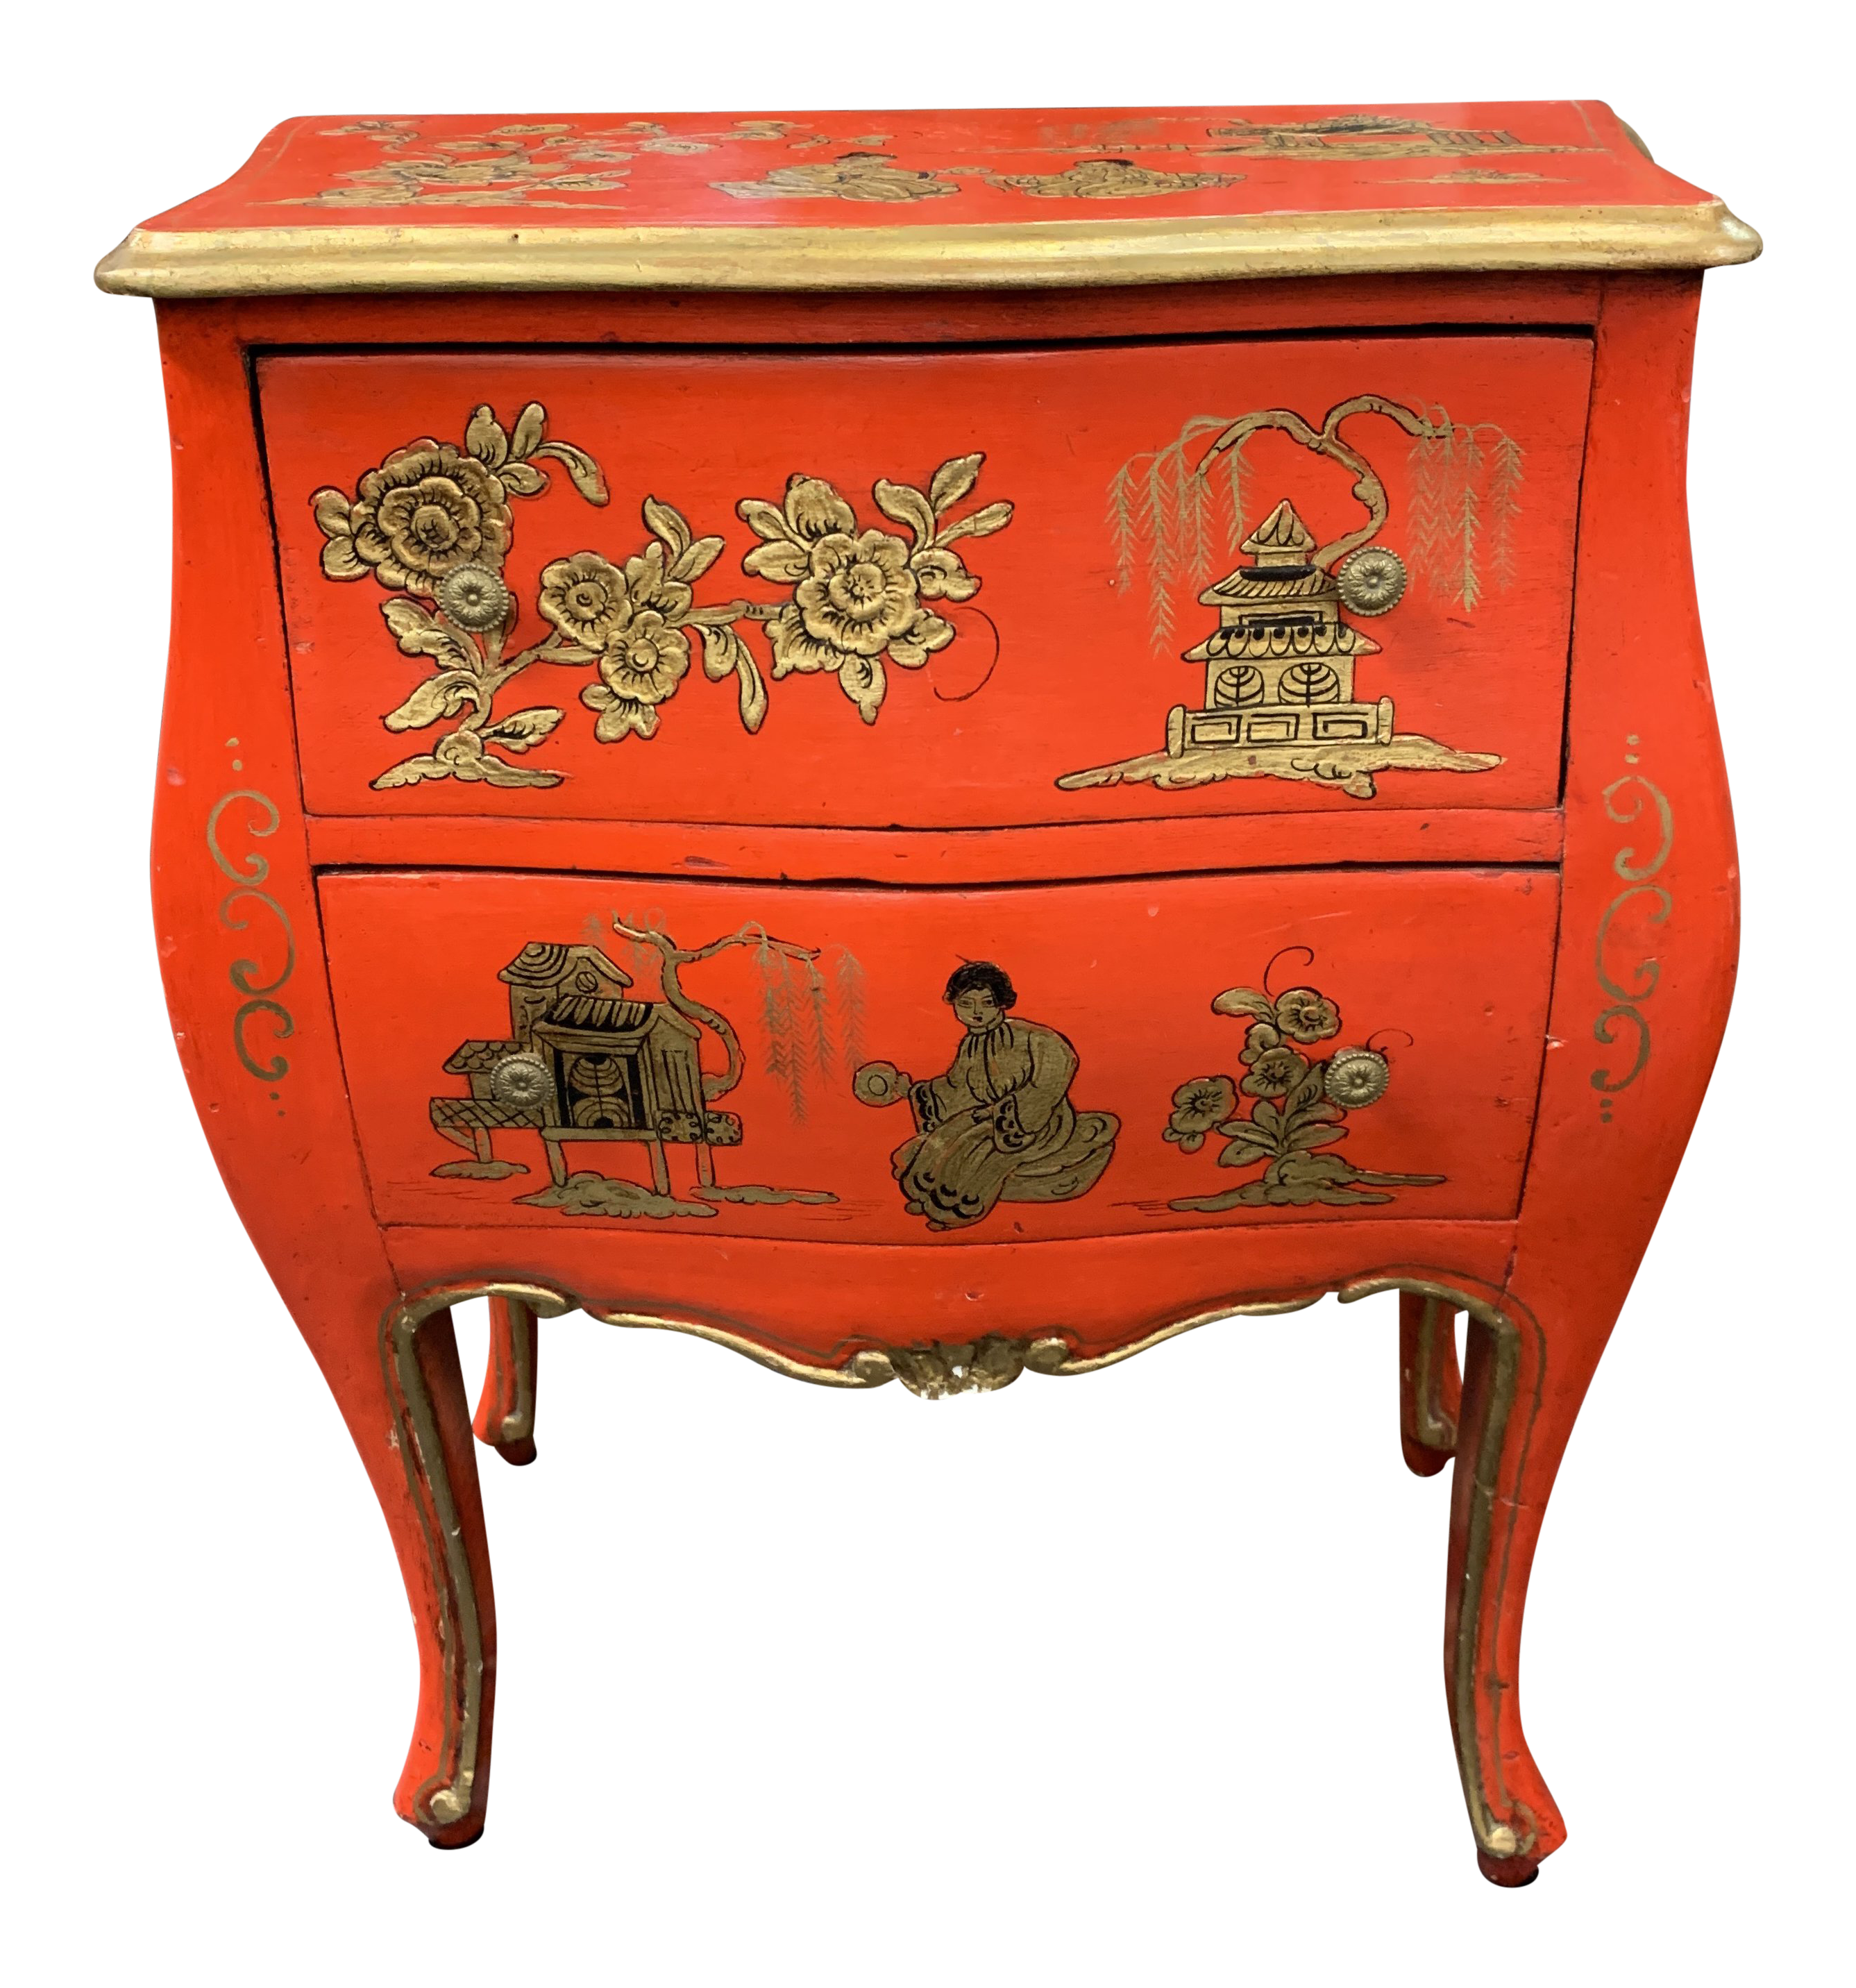 century asian red hand painted accent table chairish tables chests concrete look coffee bent acrylic garden bistro and chairs brass nautical lights teal blue mid grey wood dining